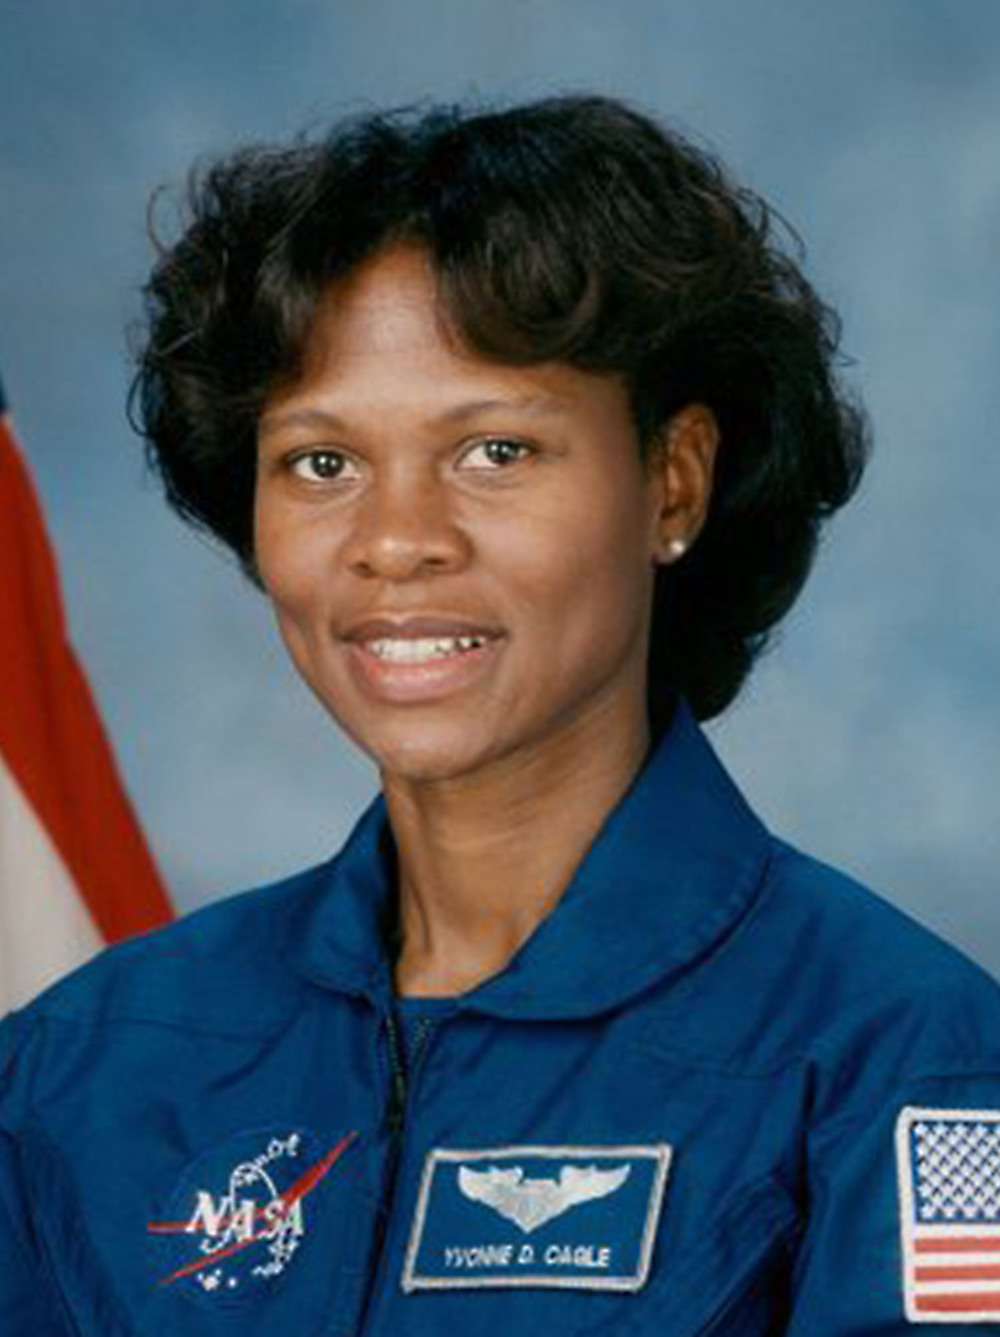 NASA shuttle astronaut & medical doctor